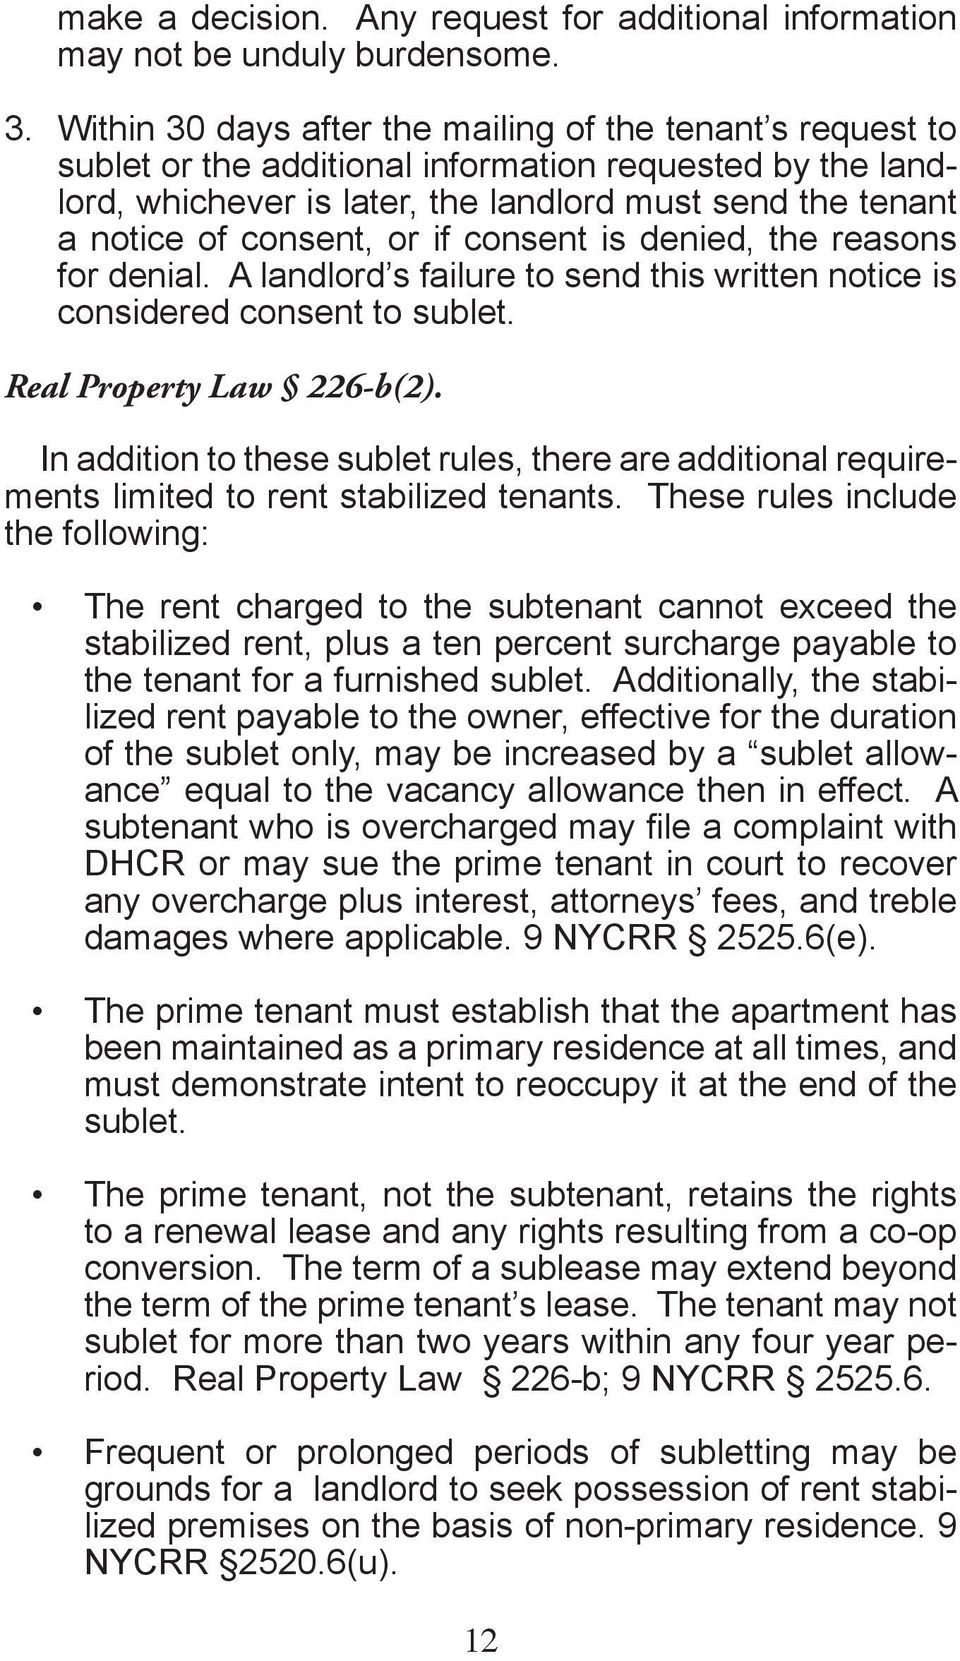 or if consent is denied, the reasons for denial. A landlord s failure to send this written notice is considered consent to sublet. Real Property Law 226-b(2).